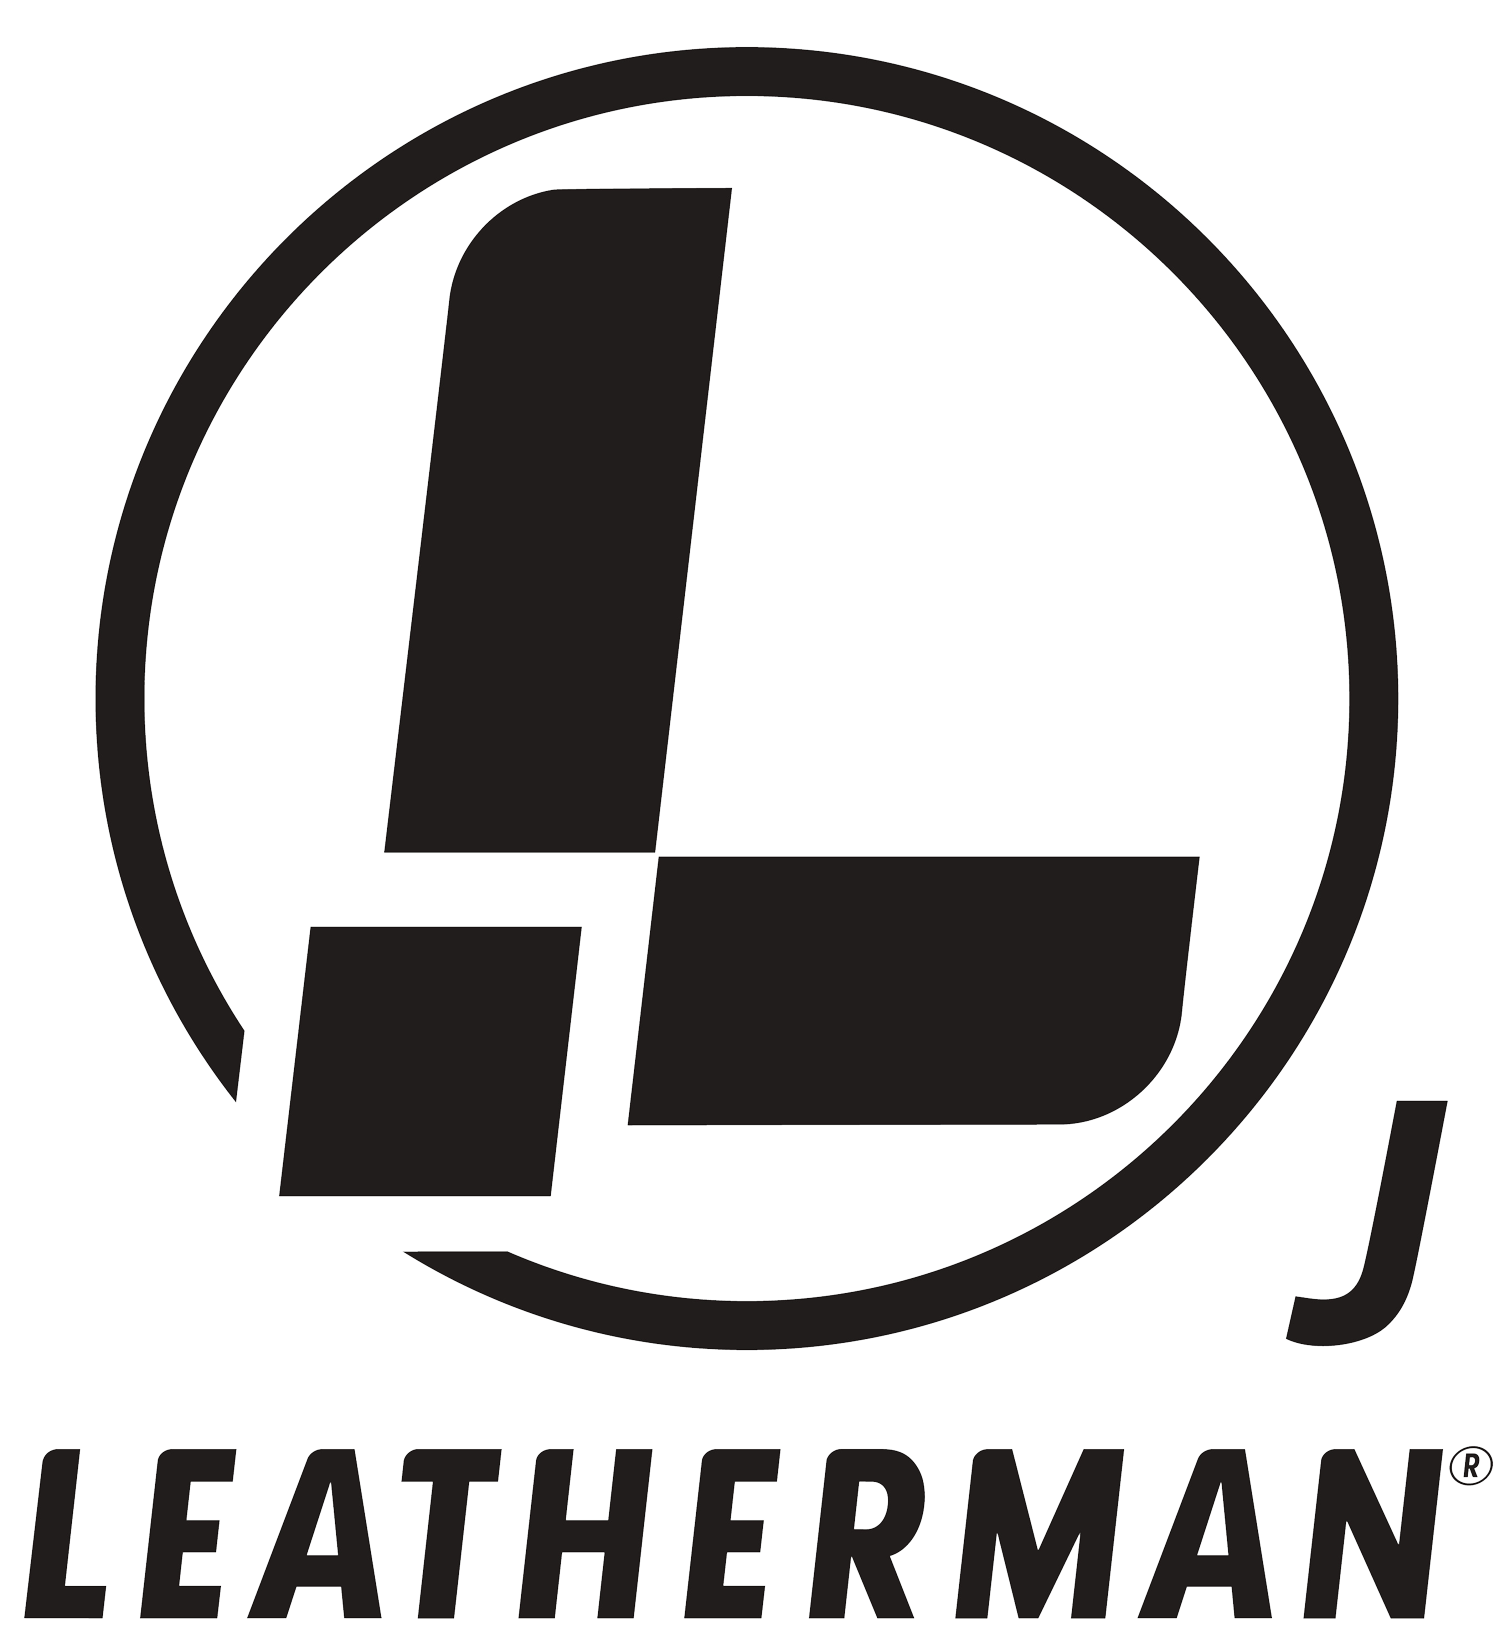 leathermanjapan.png